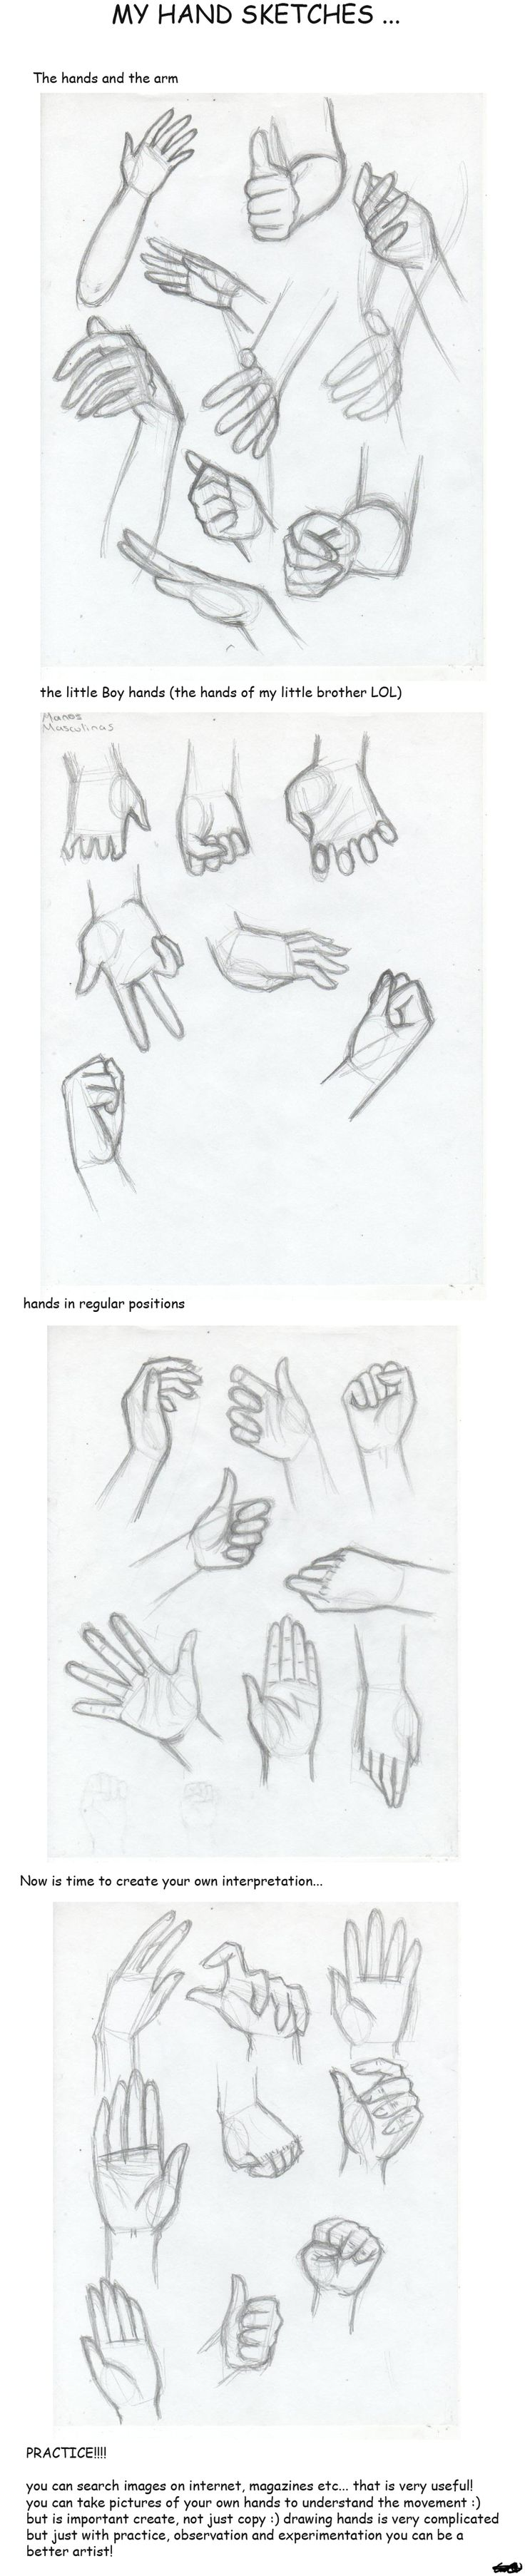 old hand sketches and a little tip by ~Yukyona-sempai on deviantART  https://itunes.apple.com/us/app/draw-pad-pro-amazing-notepads/id483071025?mt=8&at=10laCC